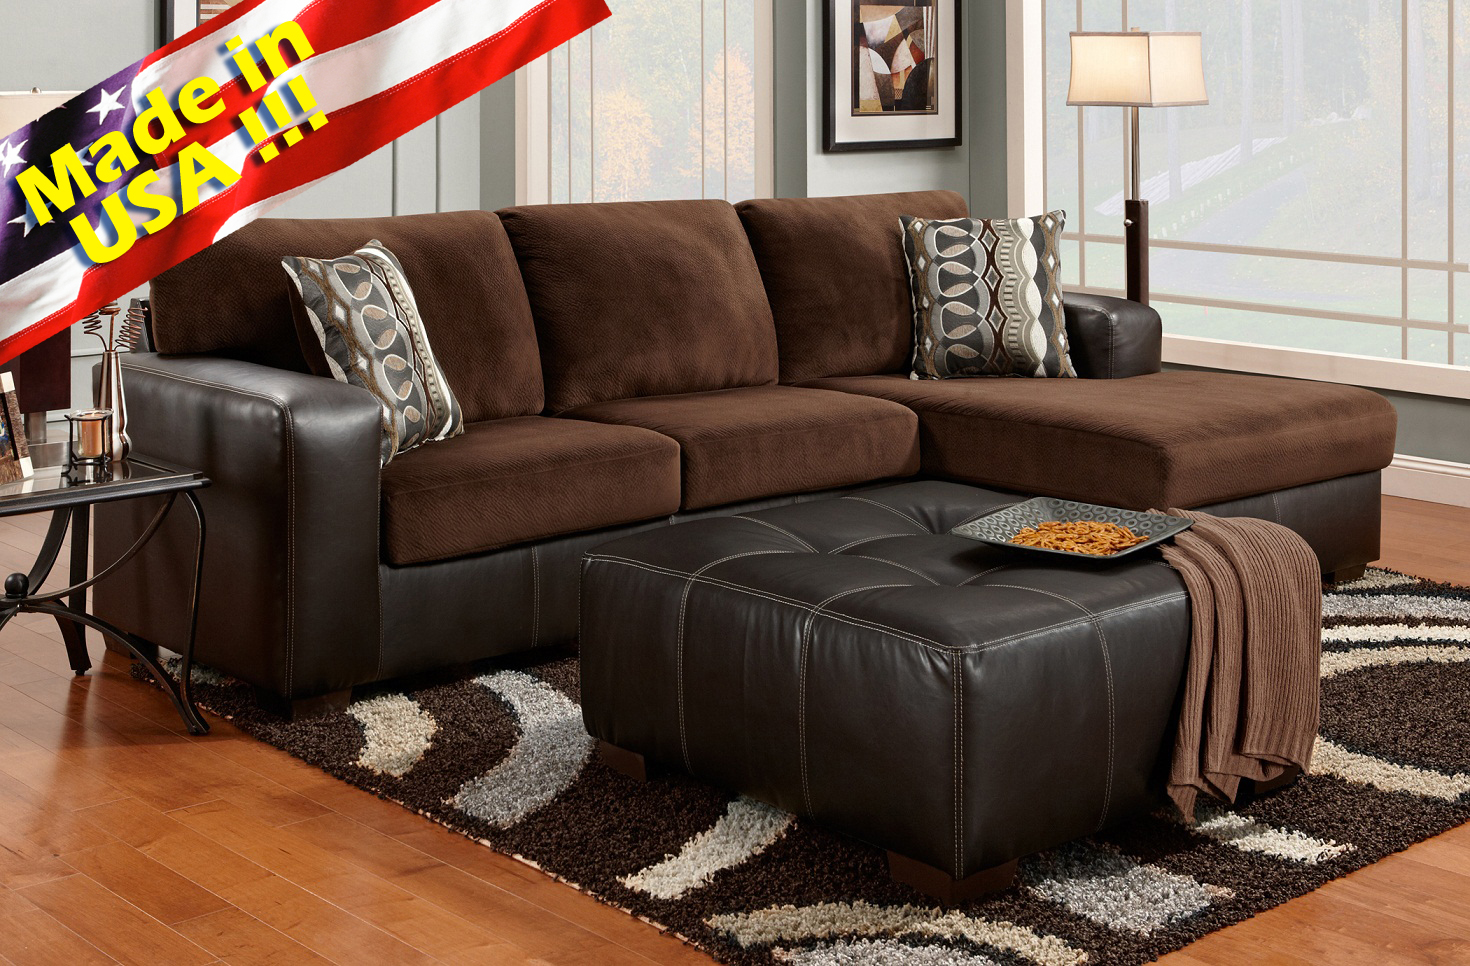 Roundhill Furniture ~ Chocolate Sectional Sofa Set With Chaise